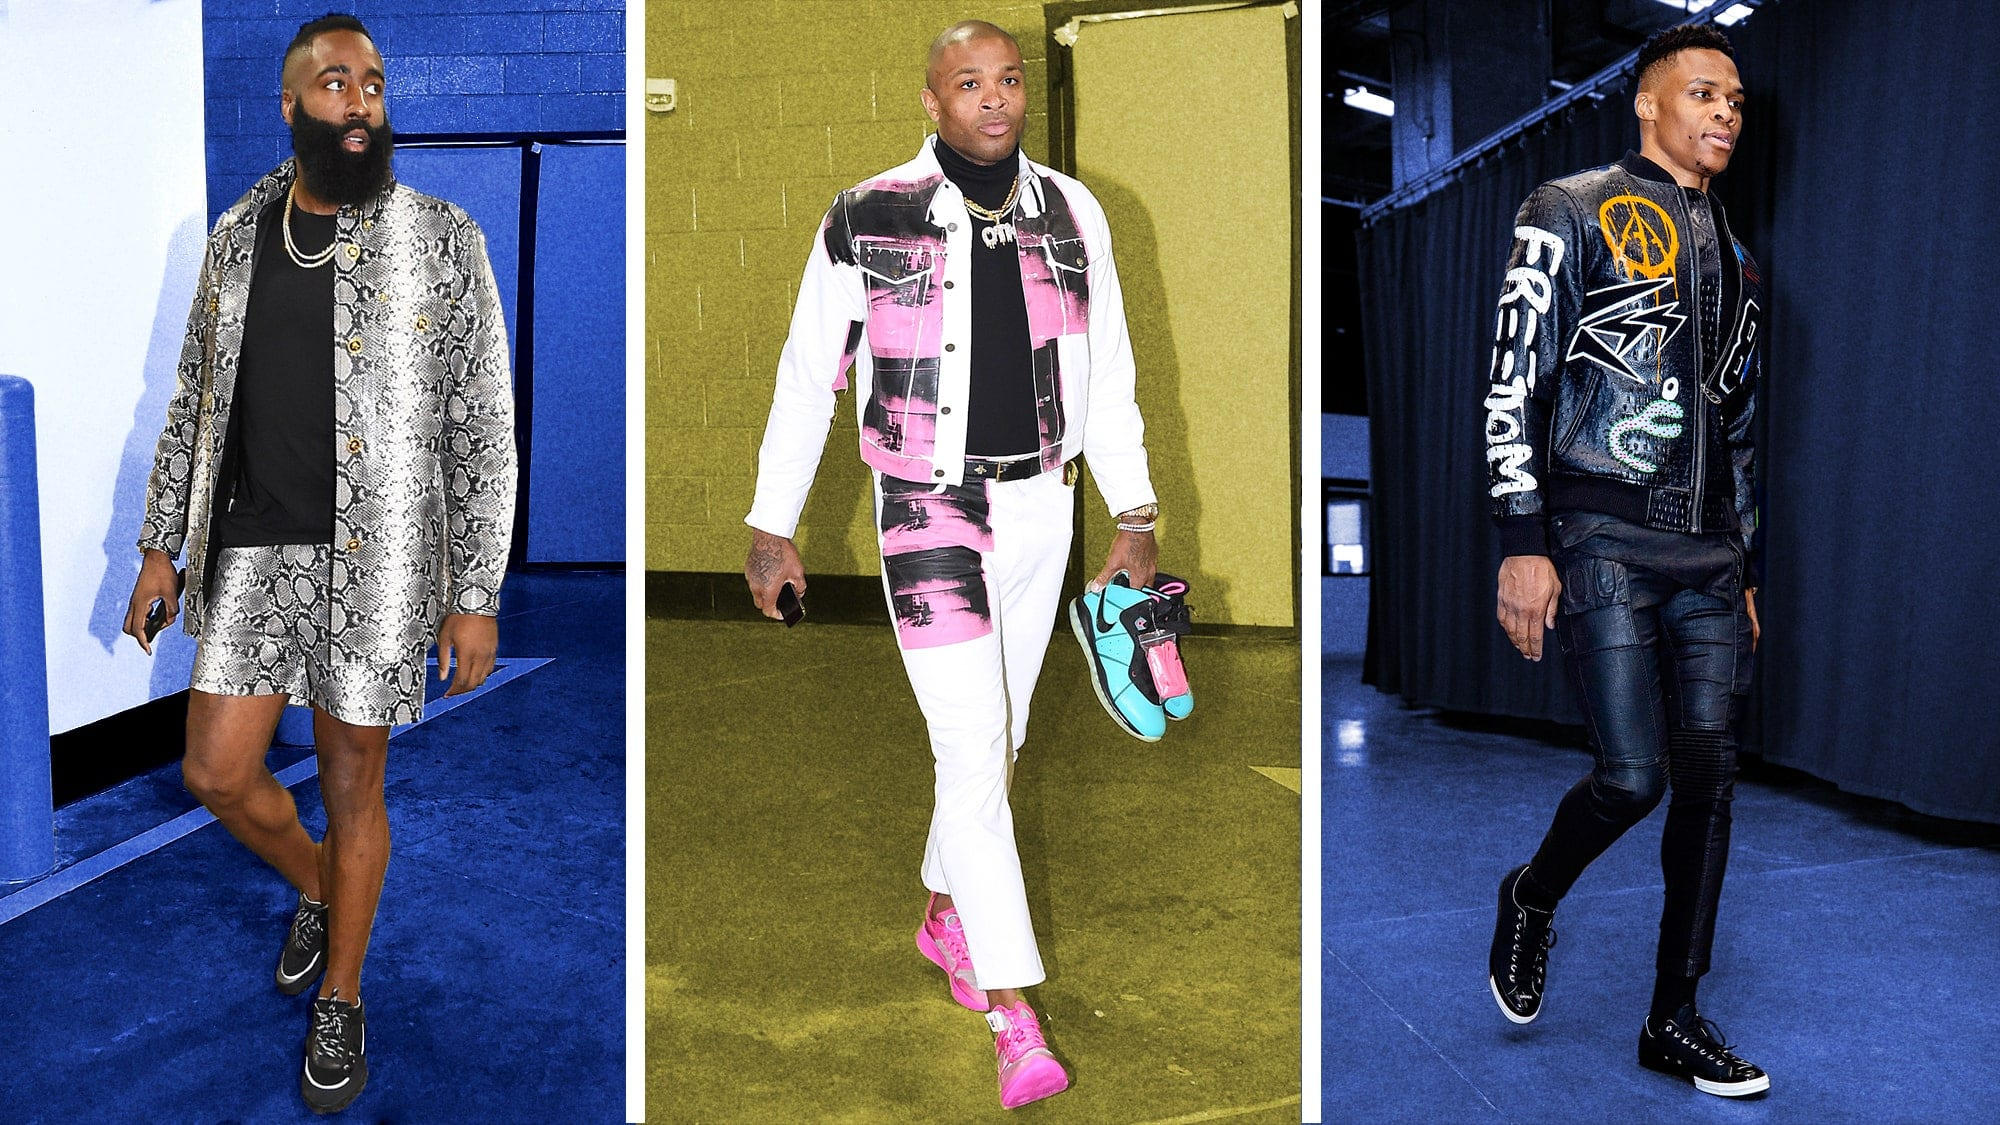 NBA Players Will Be Free to Make Pre-Game Fashion Statements After All